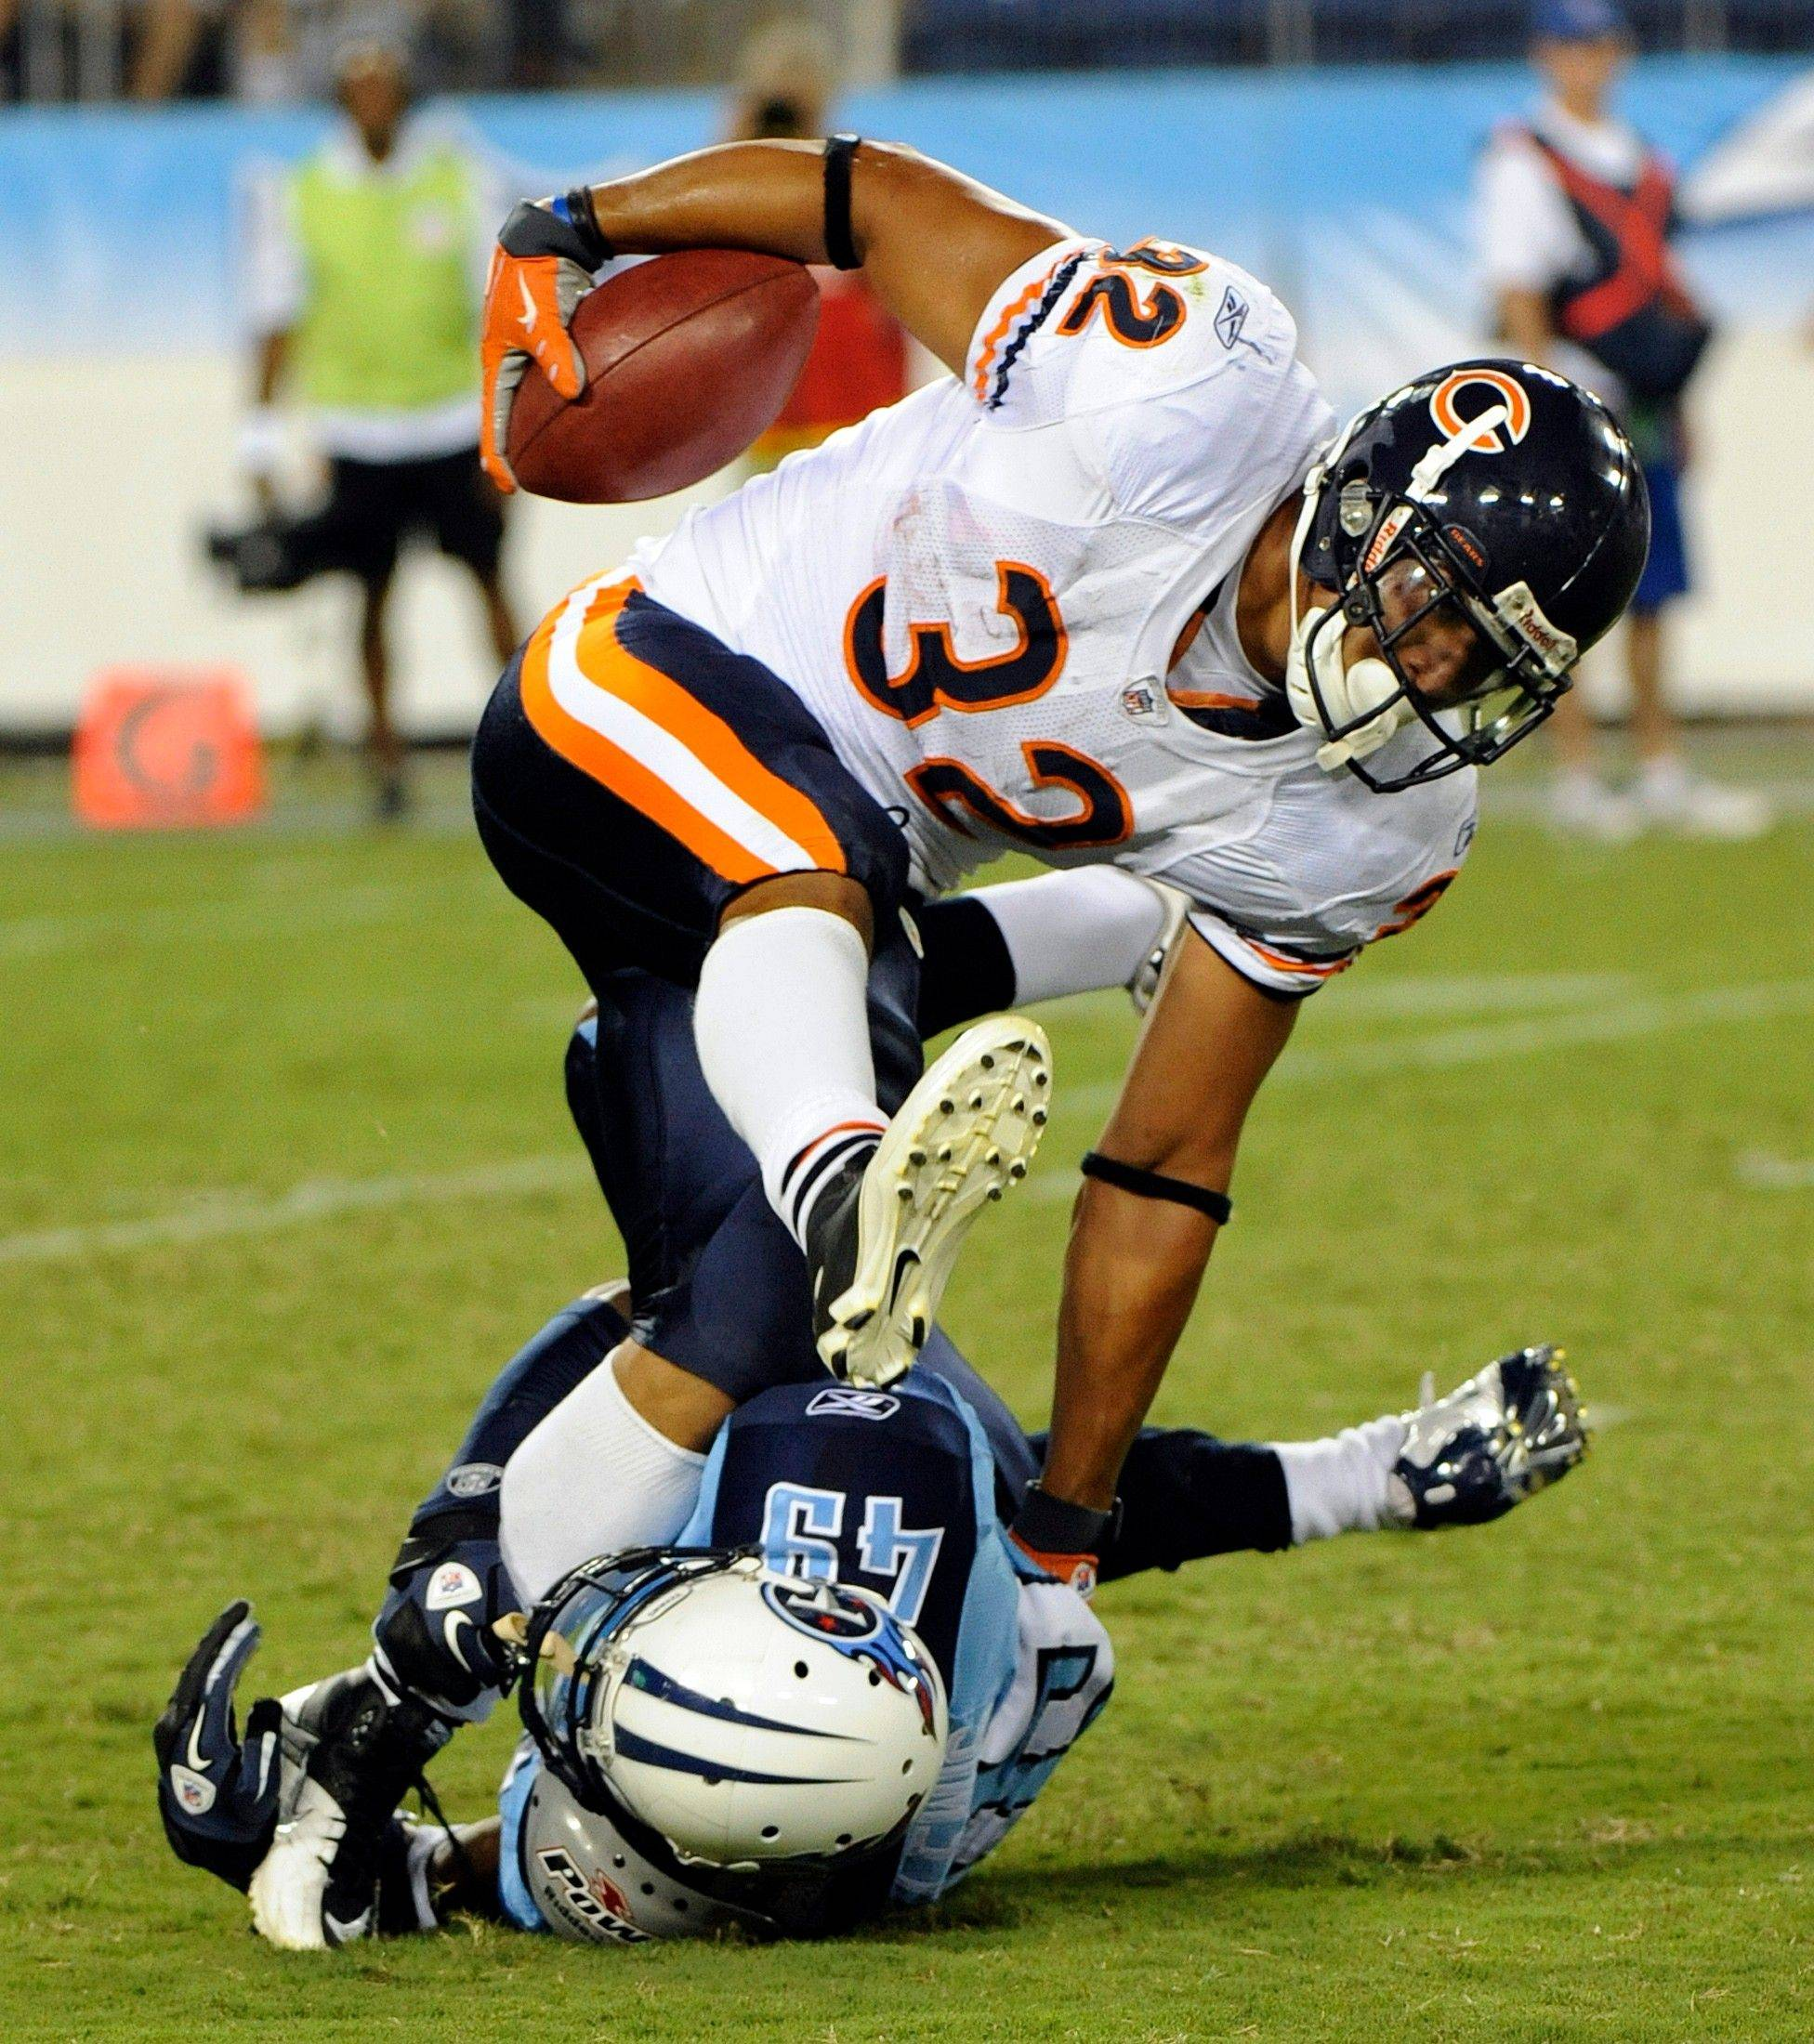 Chicago Bears running back Kahlil Bell (32) is tripped up by Tennessee Titans cornerback LeQuan Lewis (49) in the third quarter of an NFL football preseason game Saturday, Aug. 27, 2011, in Nashville, Tenn. (AP Photo/Frederick Breedon)